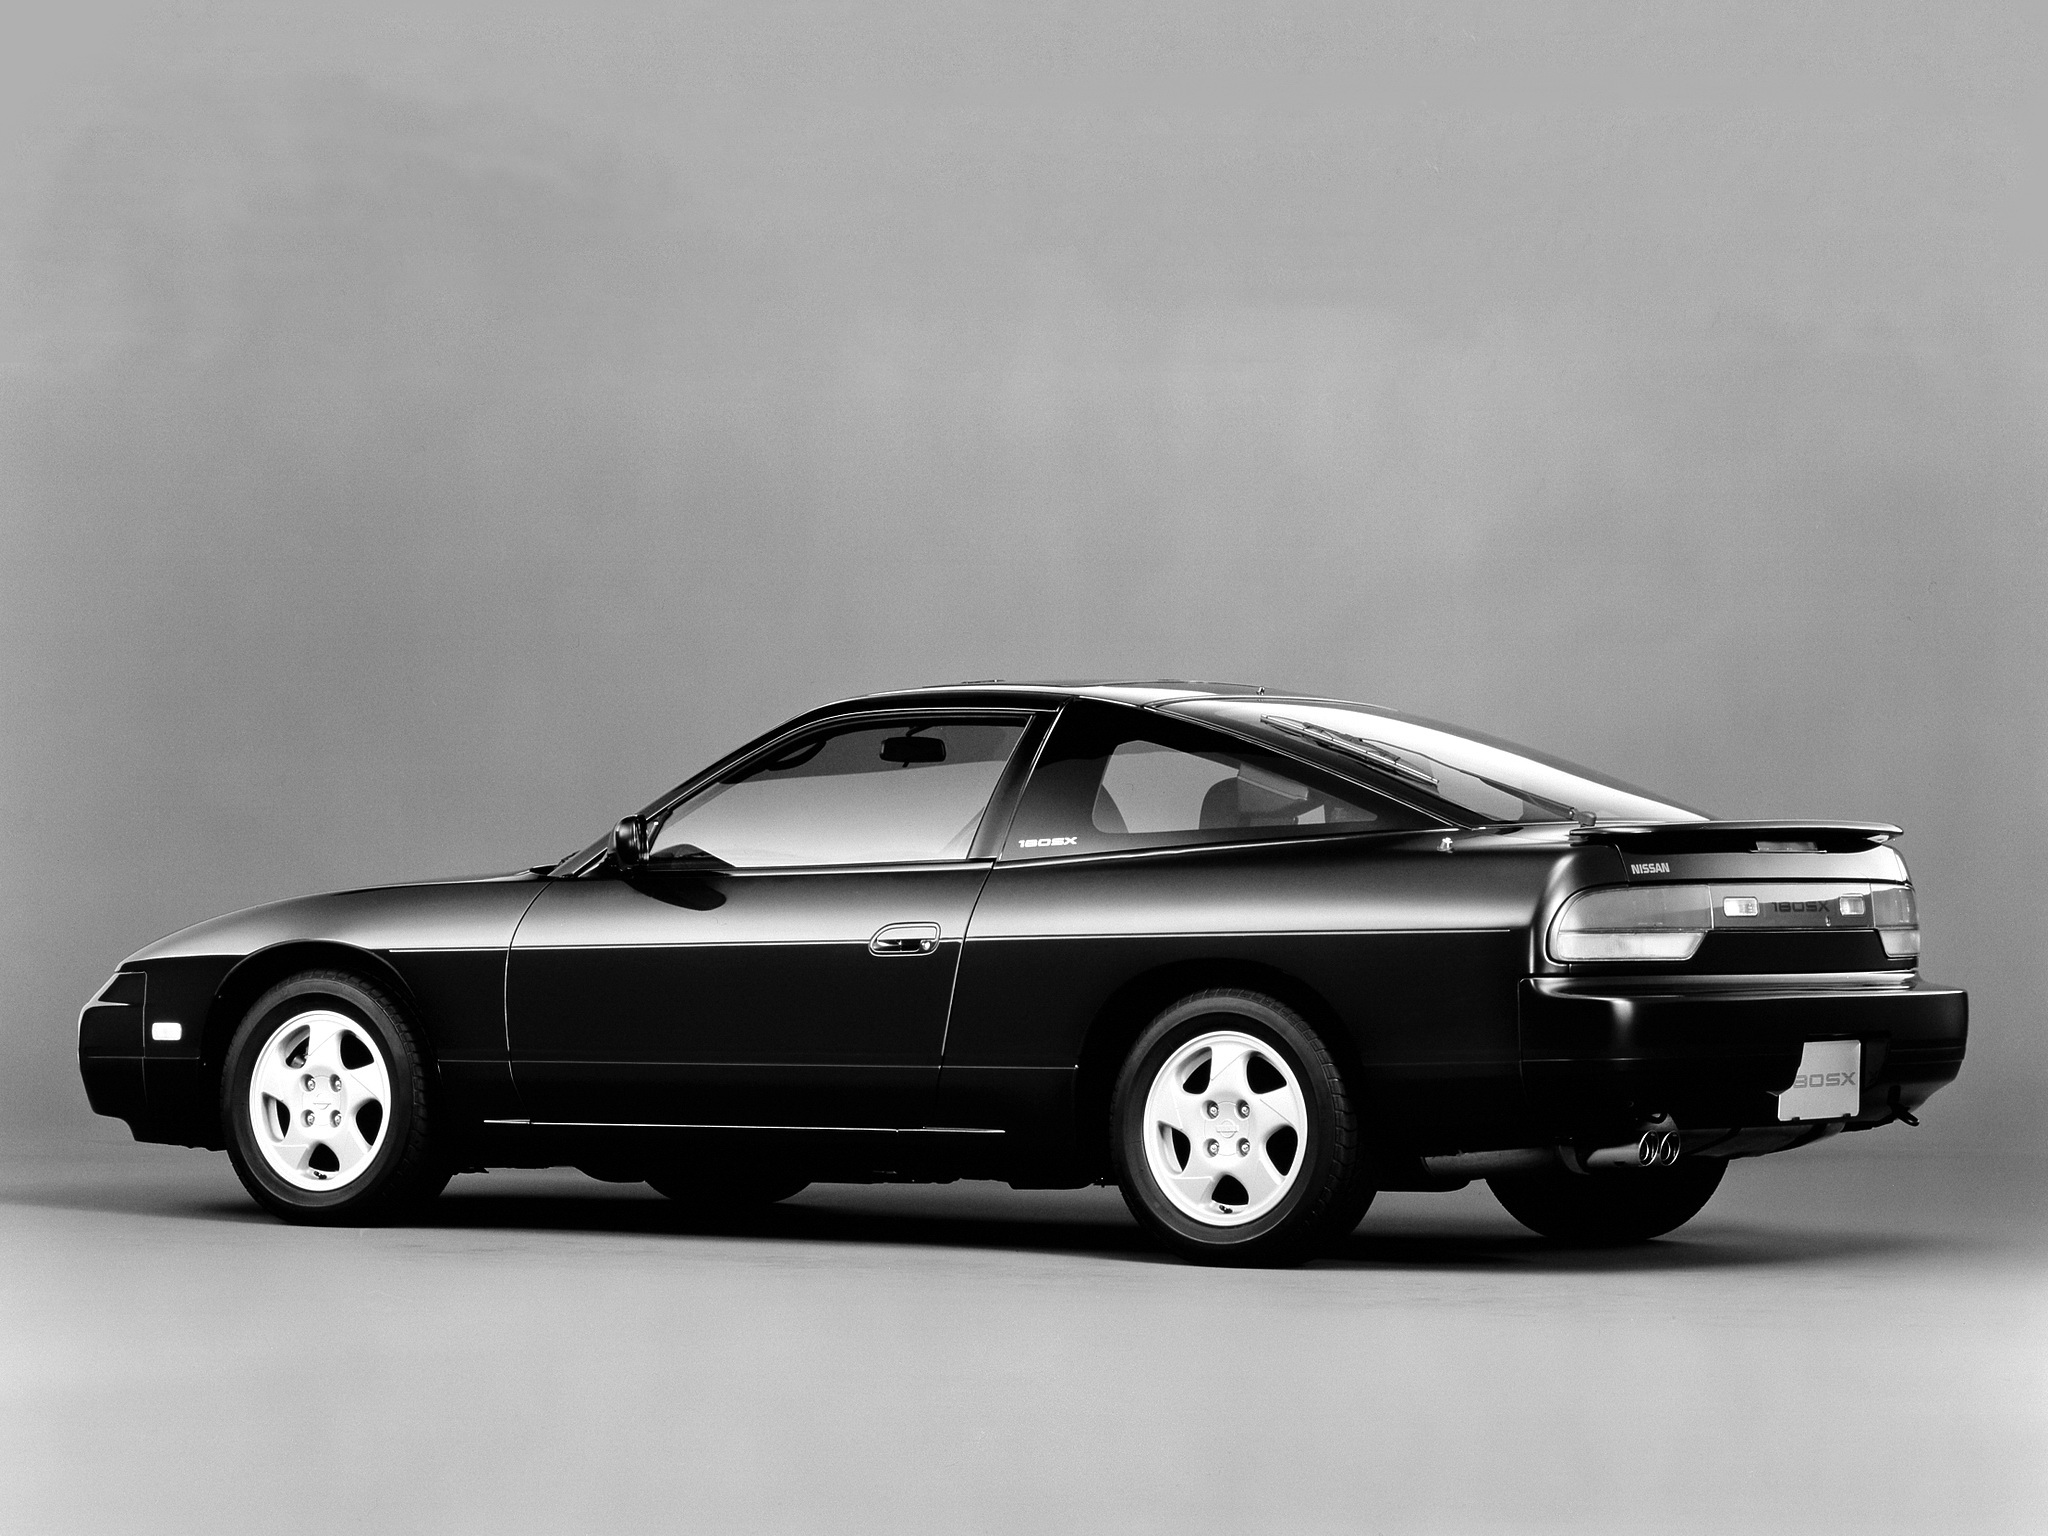 Nissan 180SX picture # 81050 | Nissan photo gallery | CarsBase.